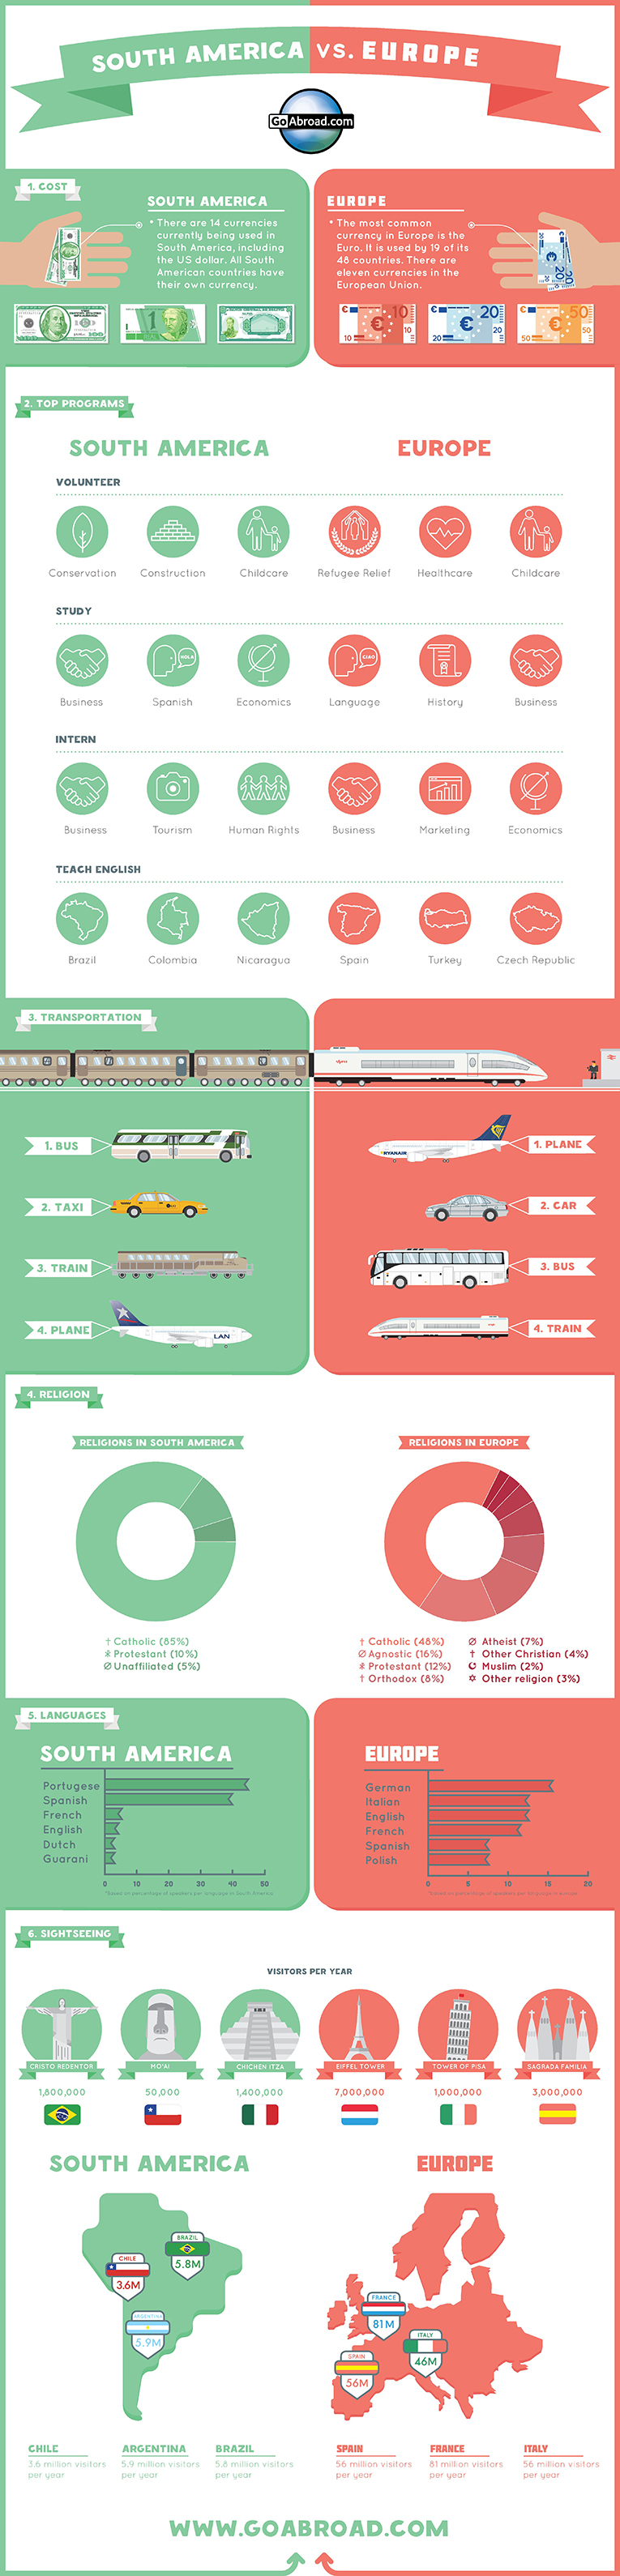 Infographic comparing travel in Europe and South America